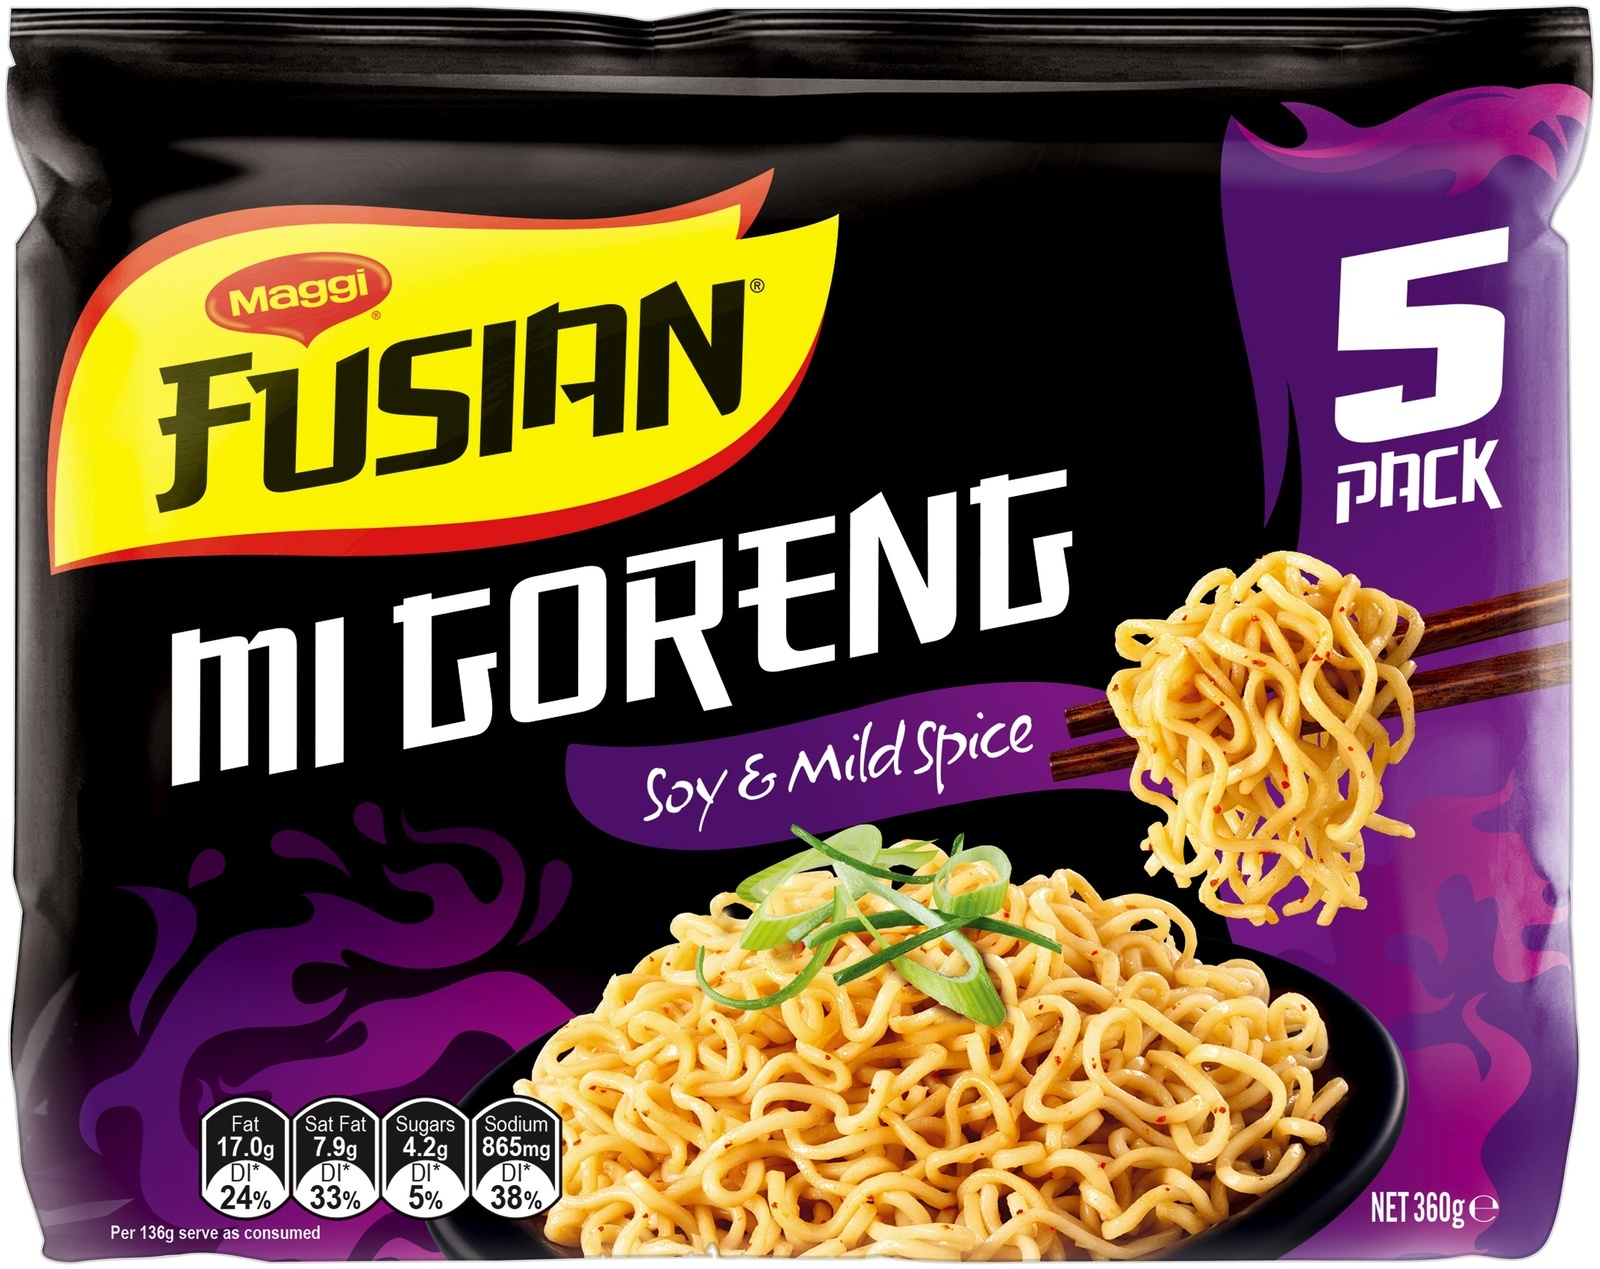 Maggi Fusian Noodles - Mi Goreng Soy & Mild Spice (30 Pack) image